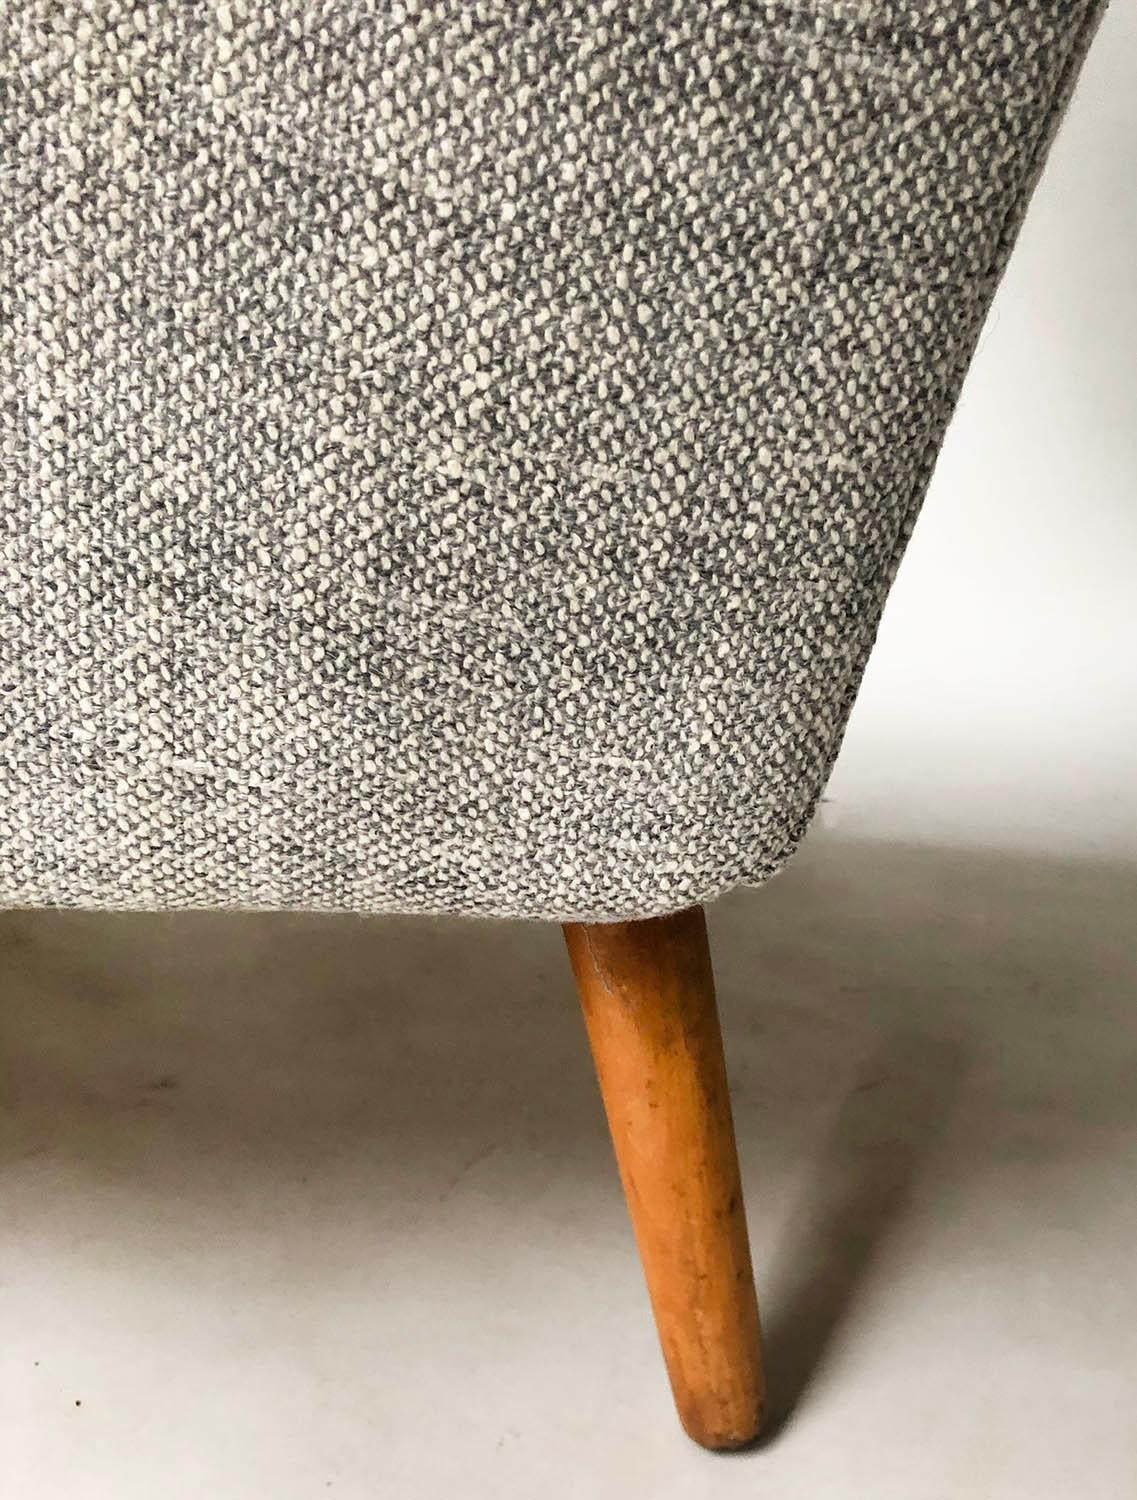 HOWARD KEITH ARMCHAIR, 1950's lounge chair newly upholstered in oatmeal soft tweed with splay - Image 4 of 5